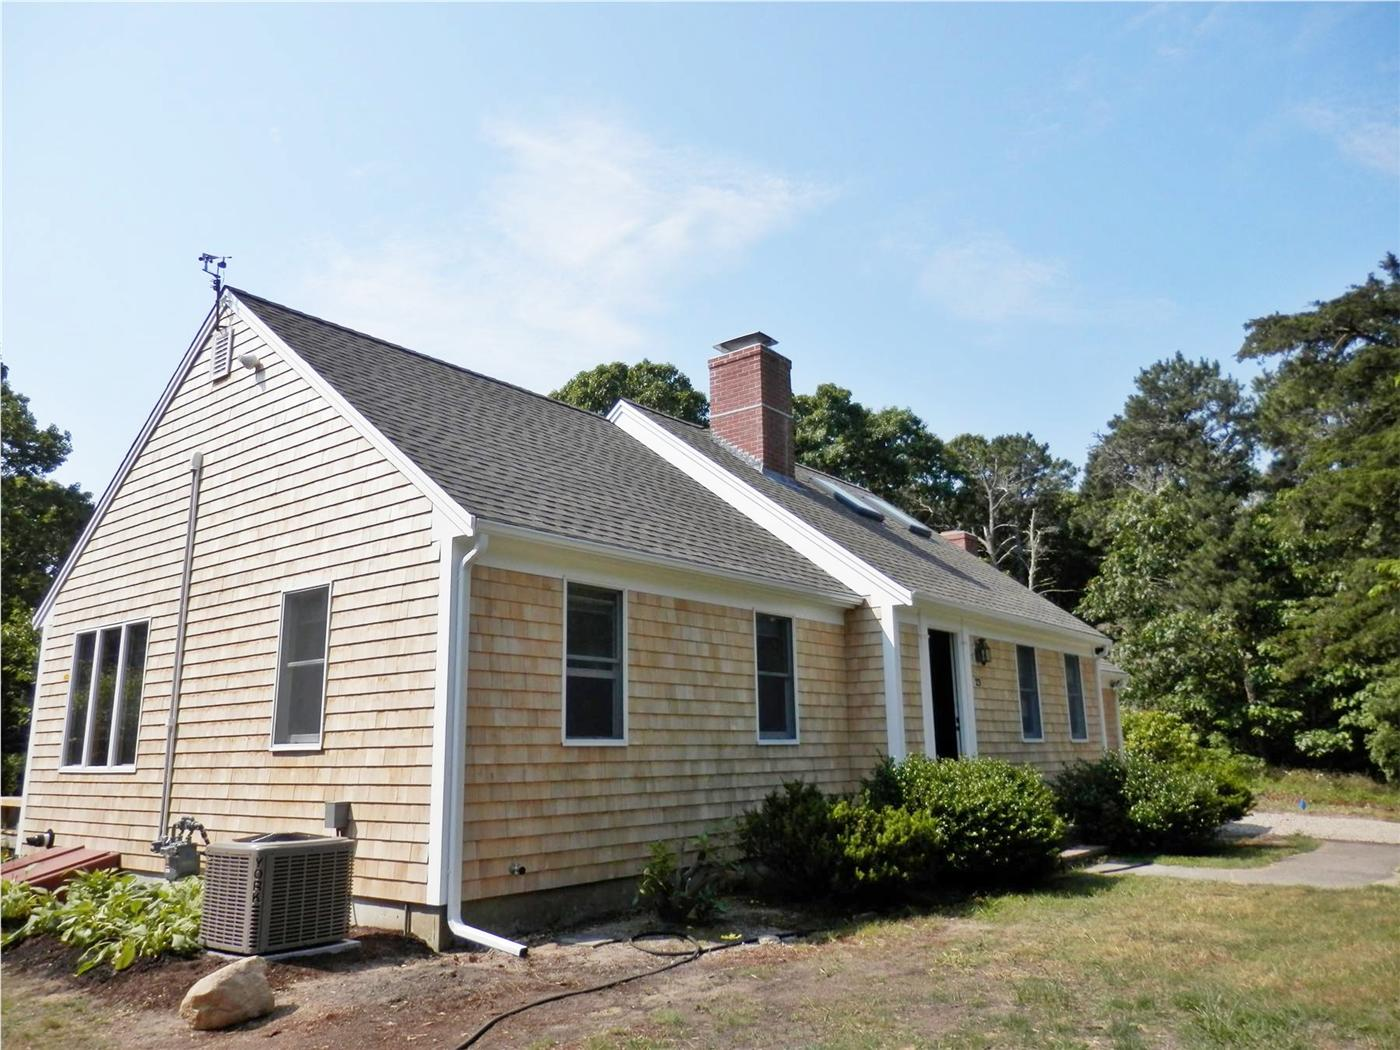 Orleans Vacation Rental Home In Cape Cod Ma 02653 Id 22507